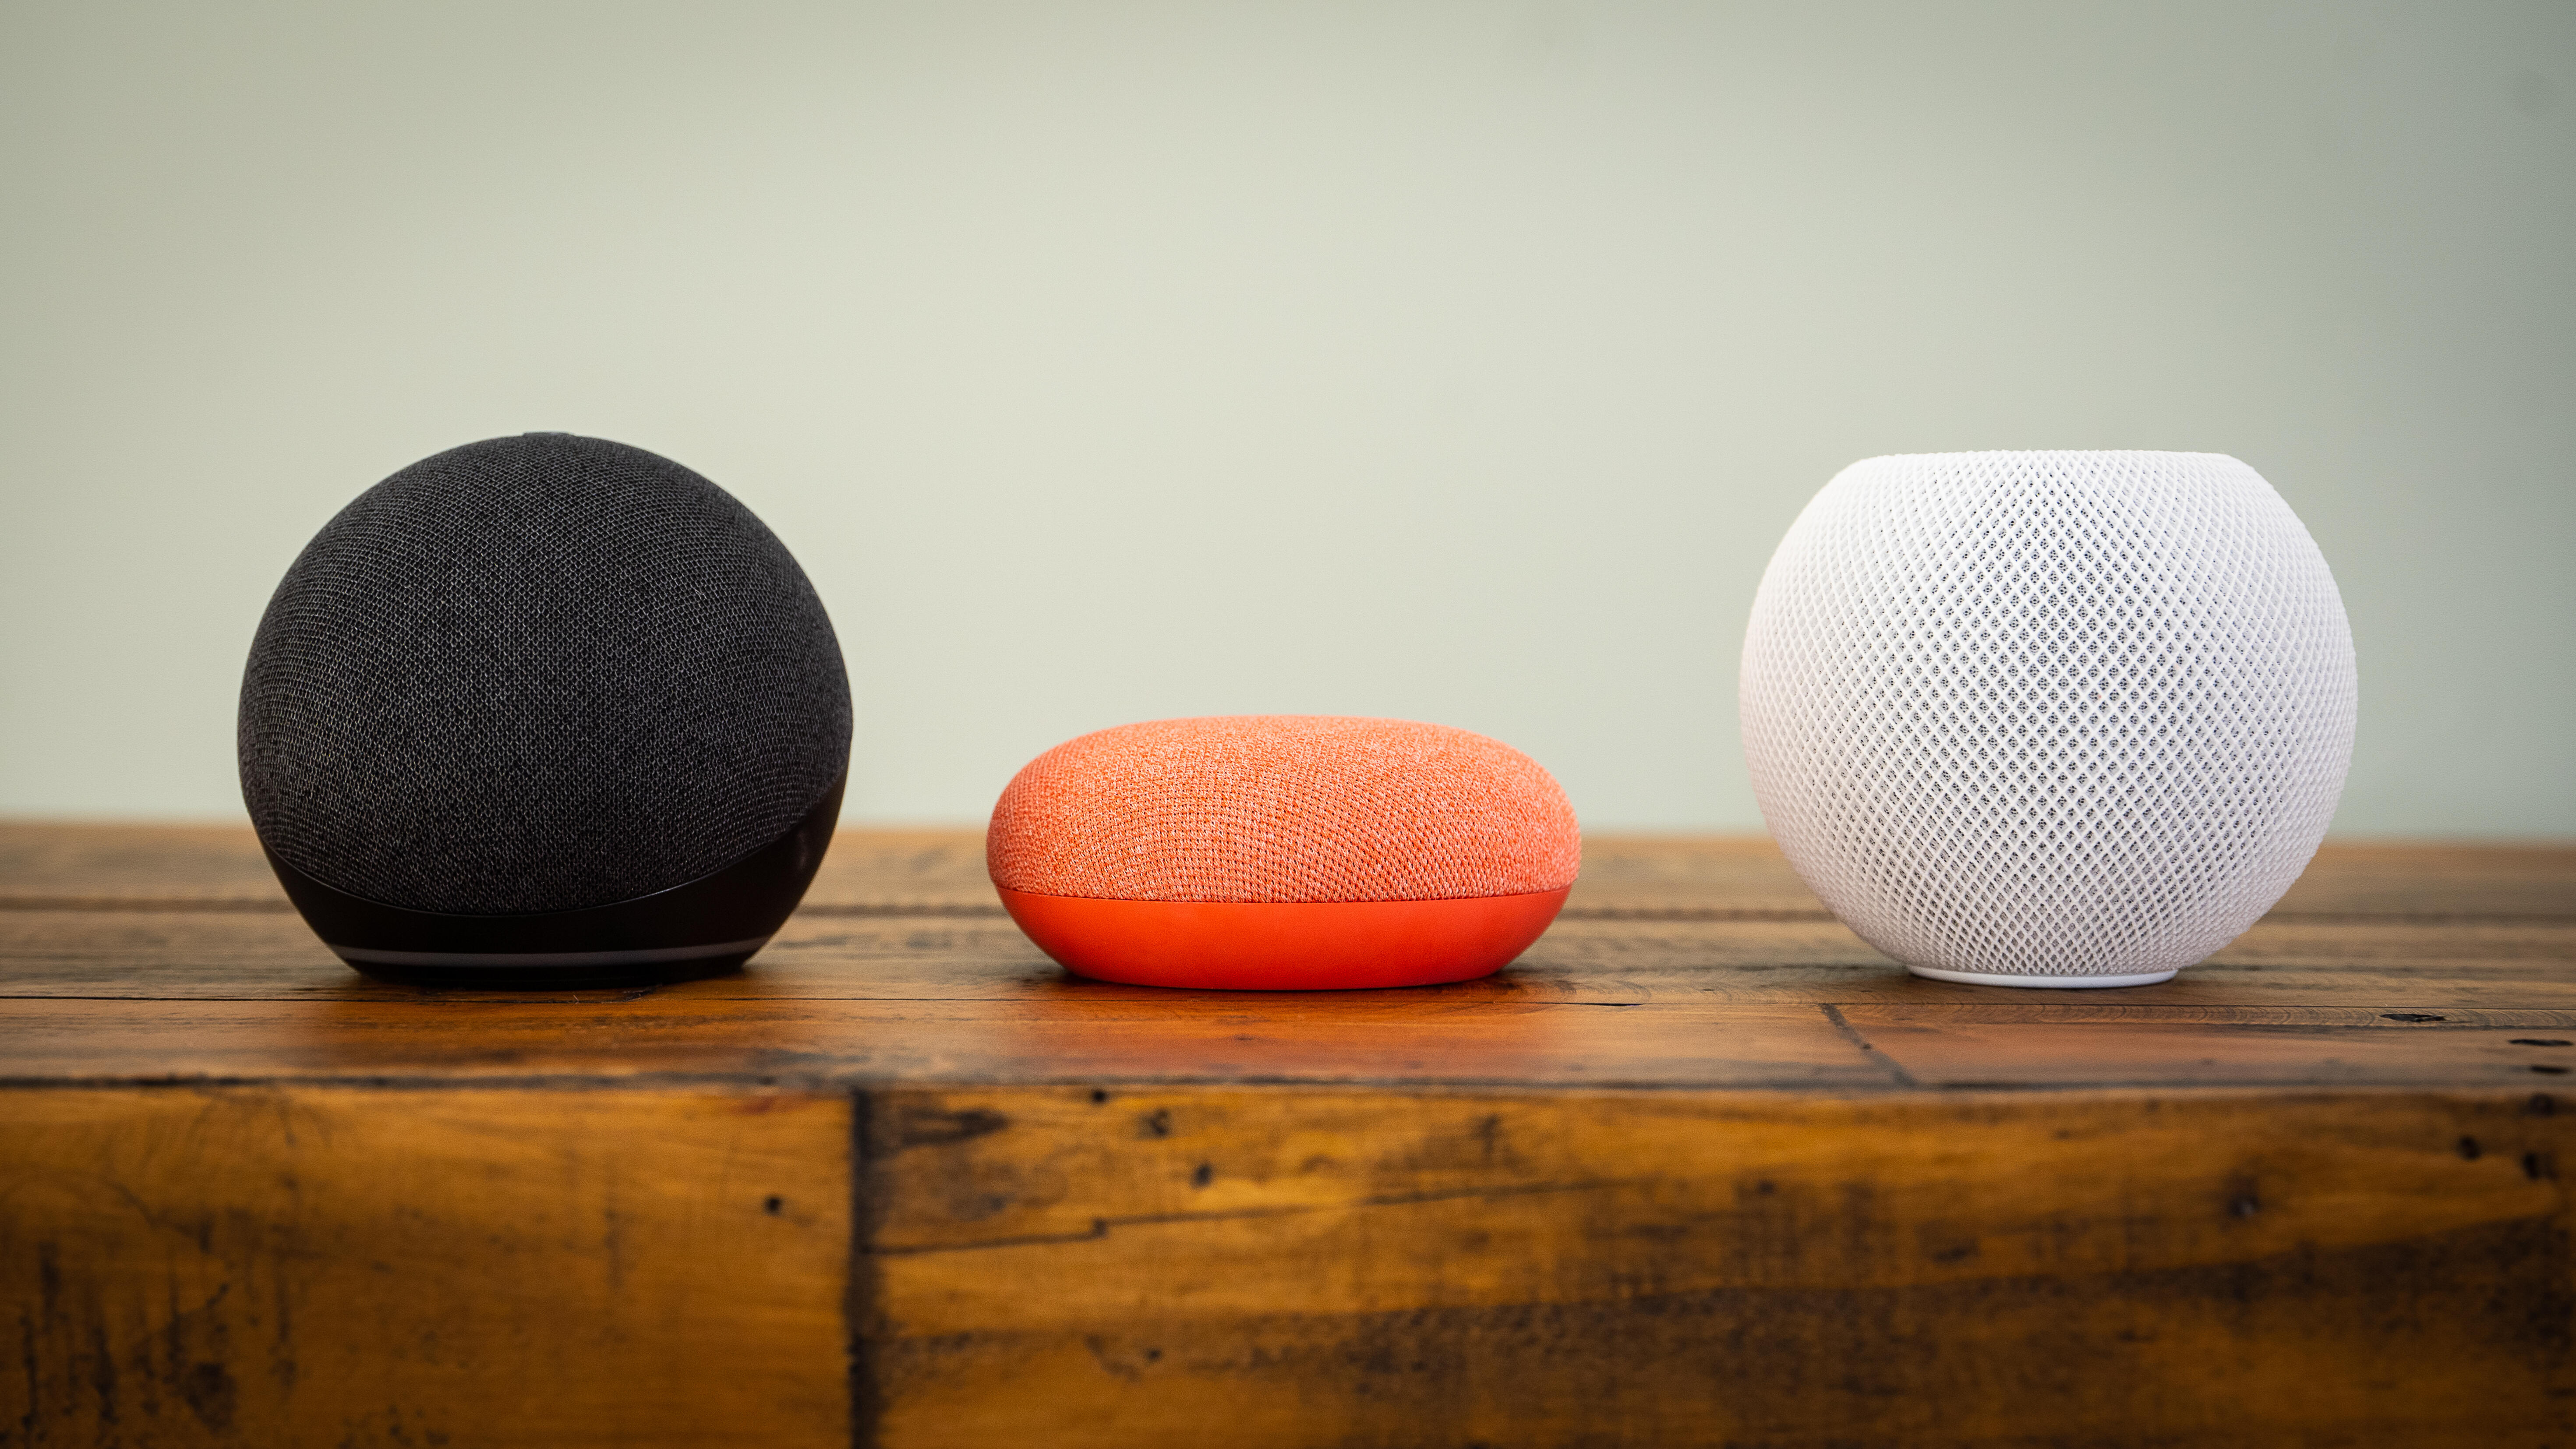 Amazon, Apple and Google: Which tech giant won the smart home in 2020? -  CNET